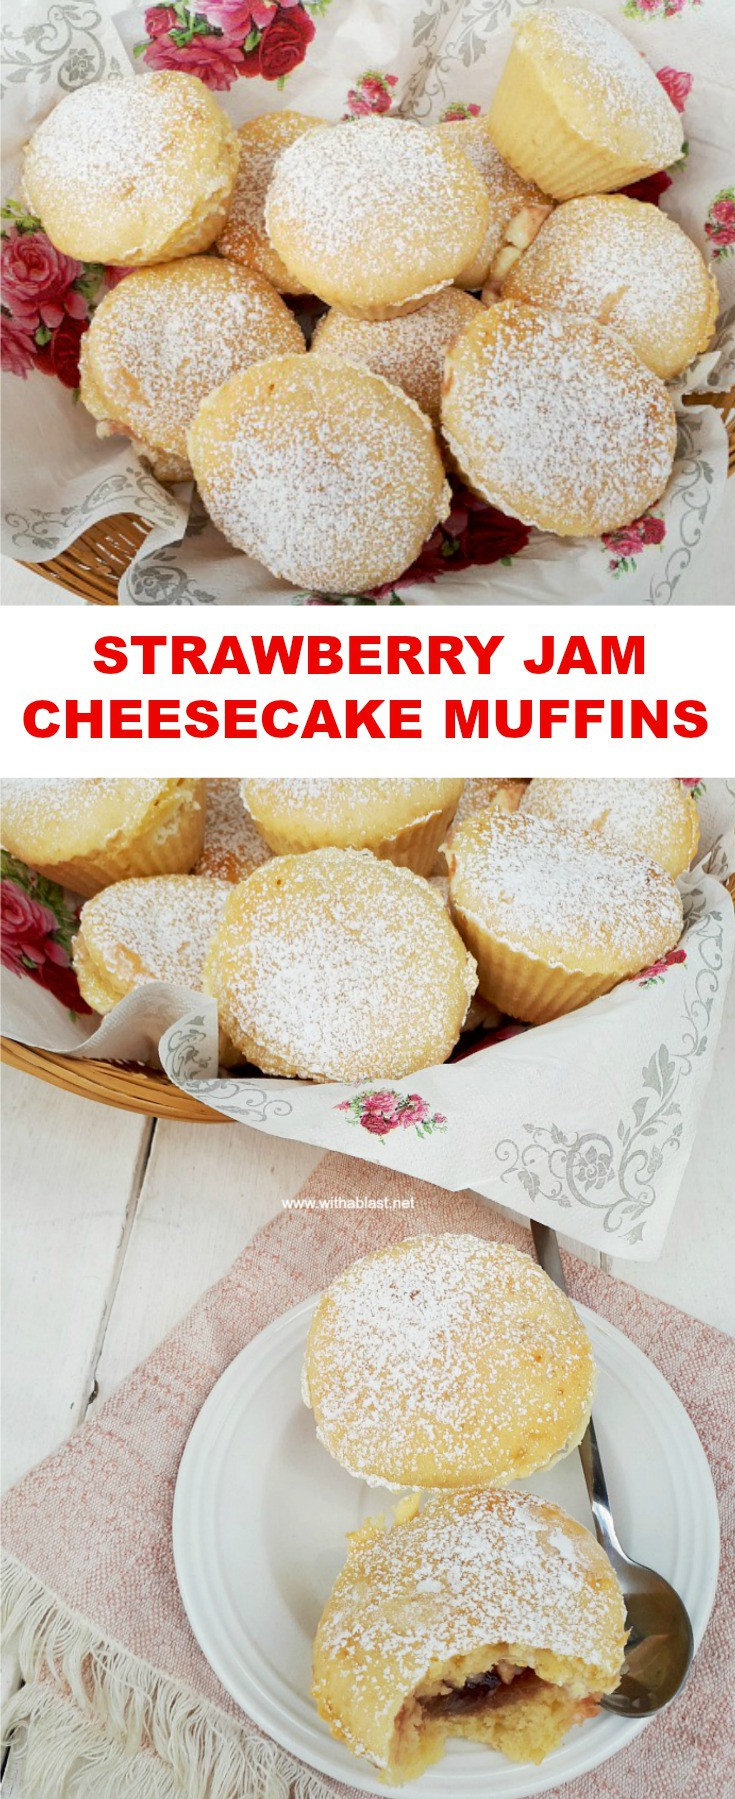 Strawberry Jam Cheesecake Muffins are a delicious addition to a tea time plate, breakfast and can even be served as a light dessert #MuffinRecipes #EasyStuffedMuffins #StrawberryMuffins